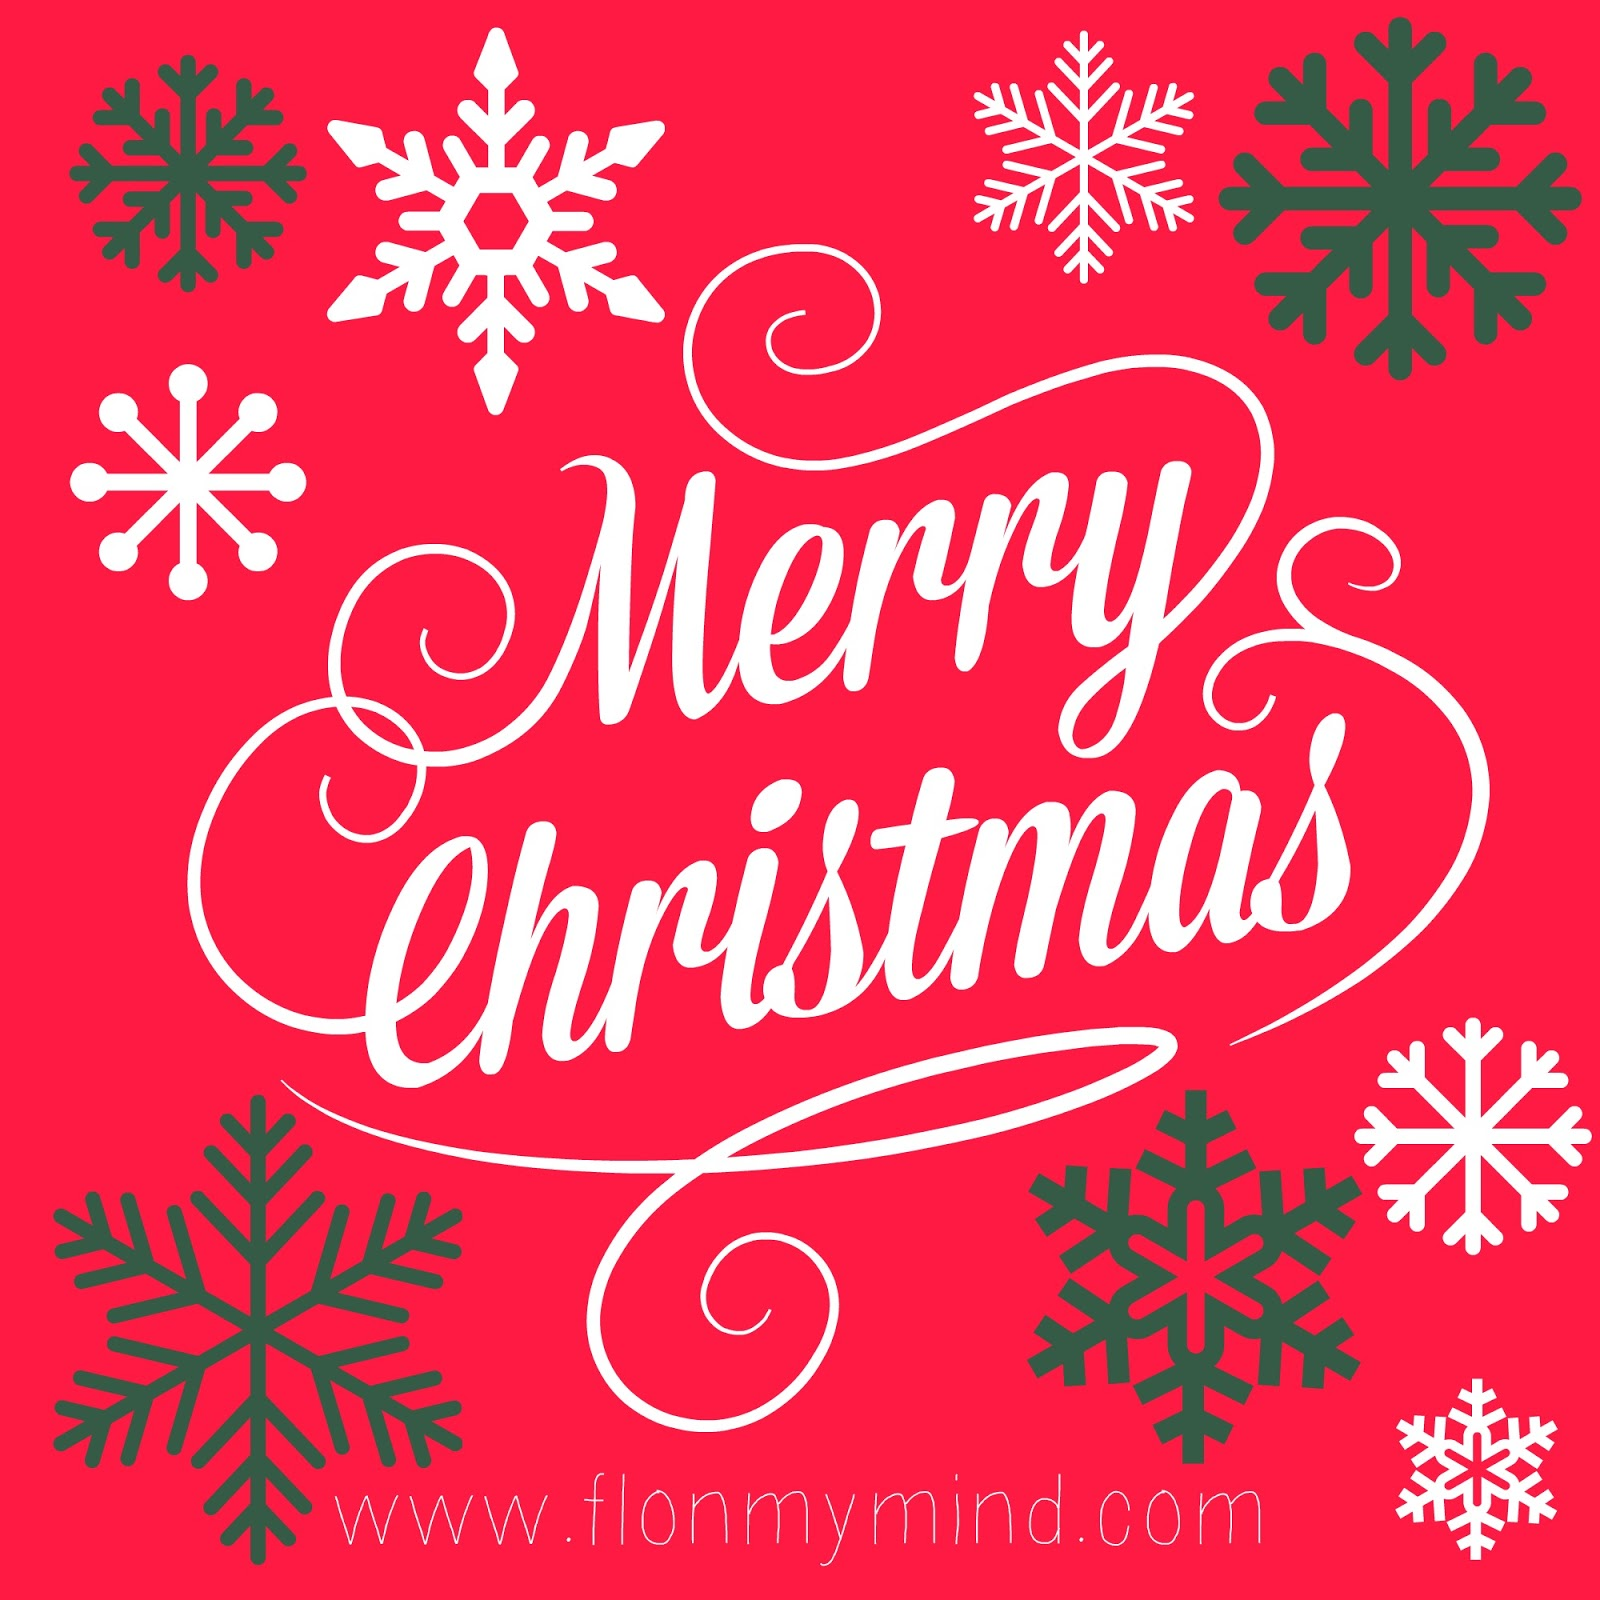 DOWNLOAD MERRY CHRISTMAS HD IMAGES